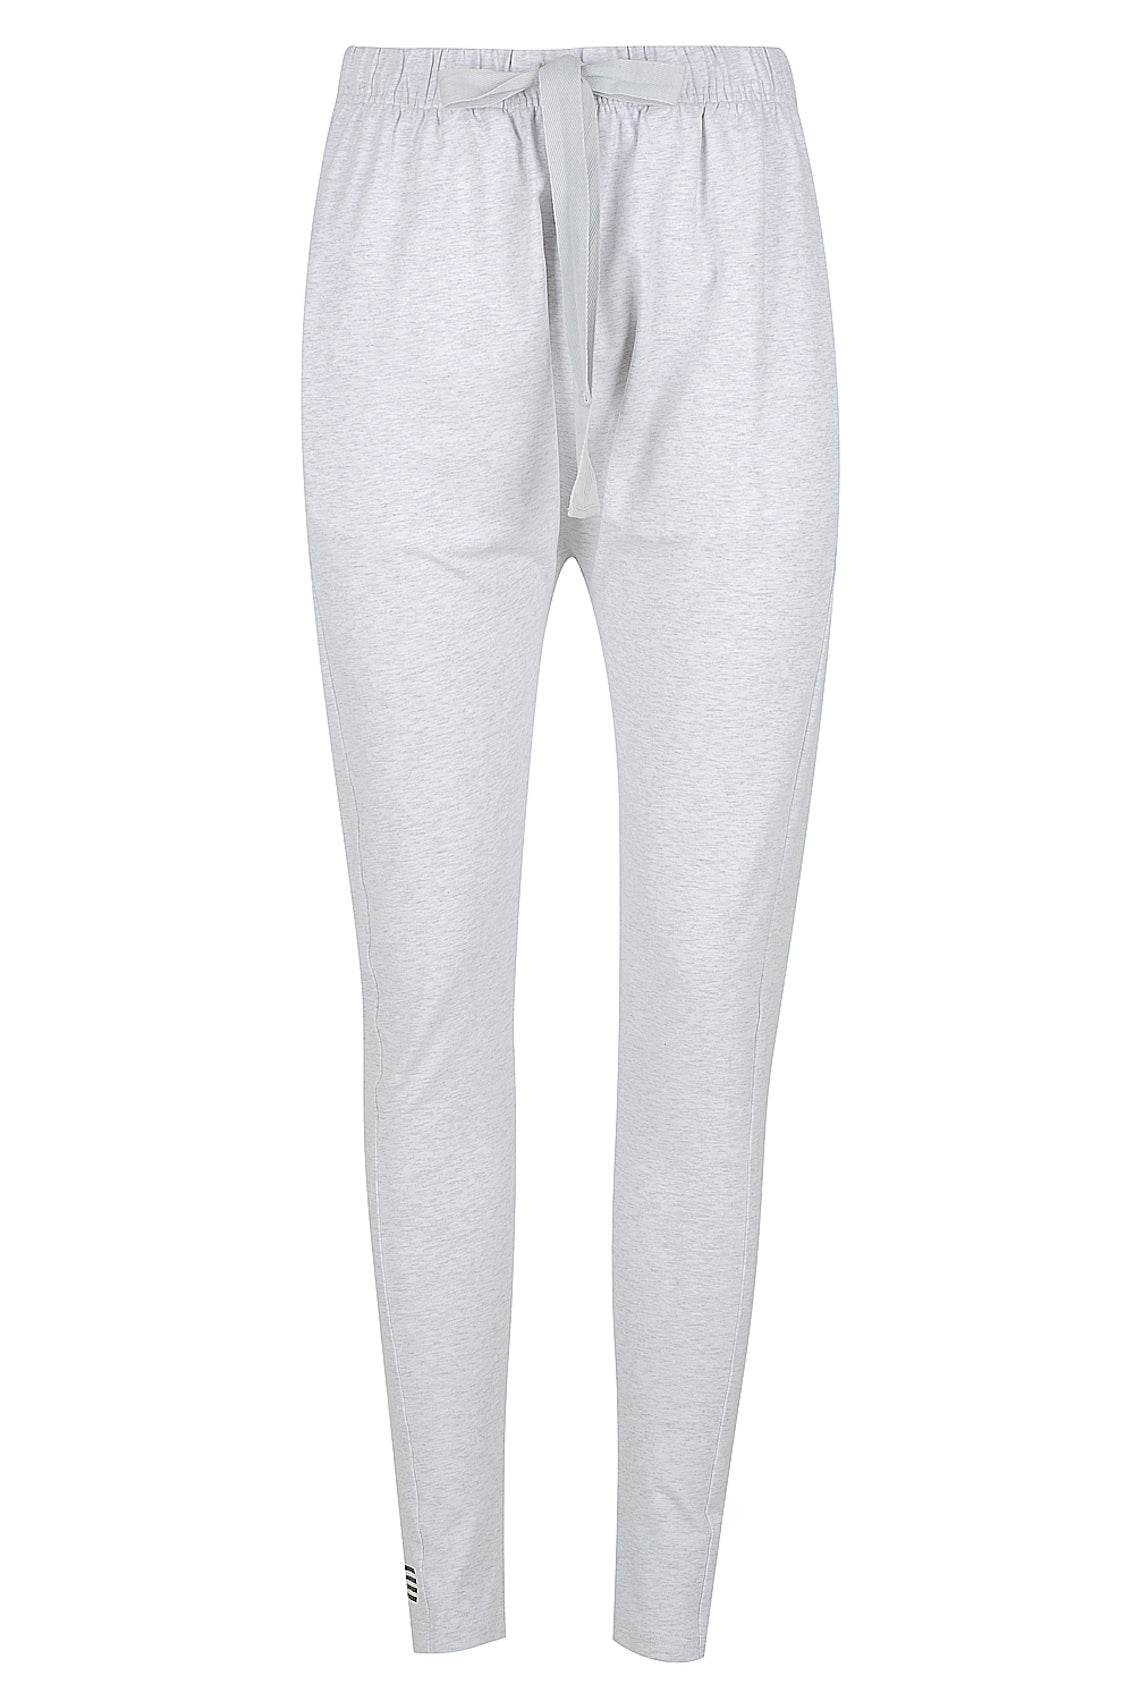 Lightweight Slouch Pant - light grey marle